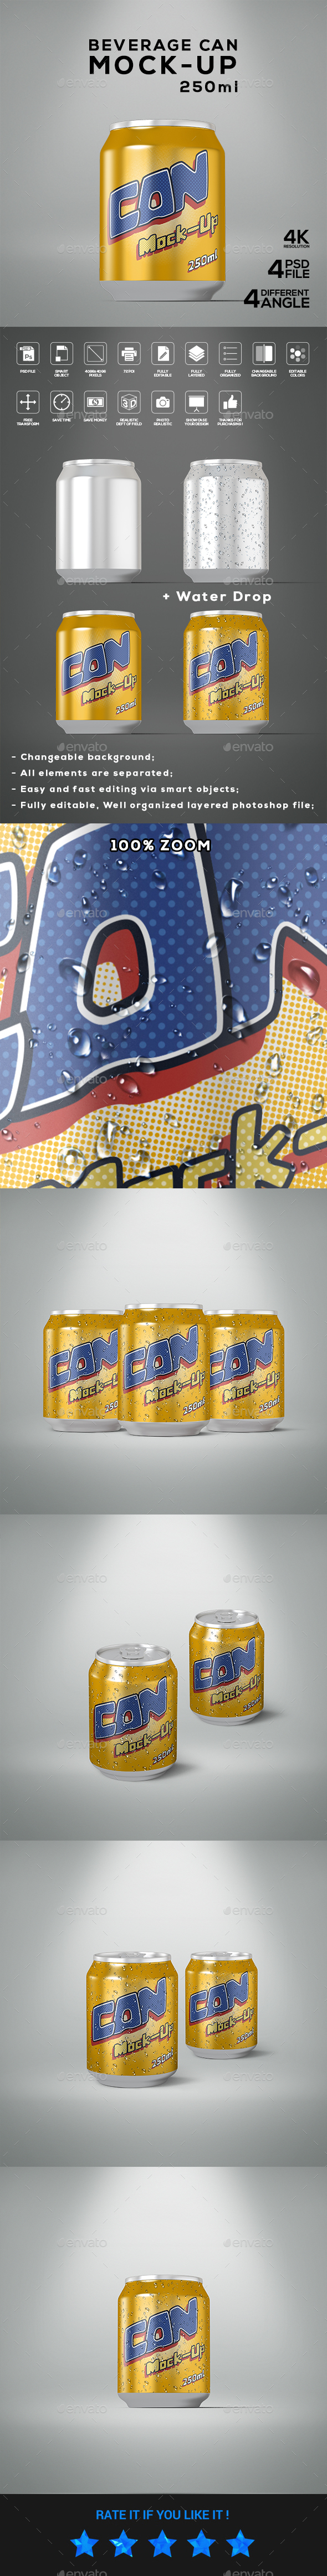 Beverage Can 250ml Mock-Up - Food and Drink Packaging